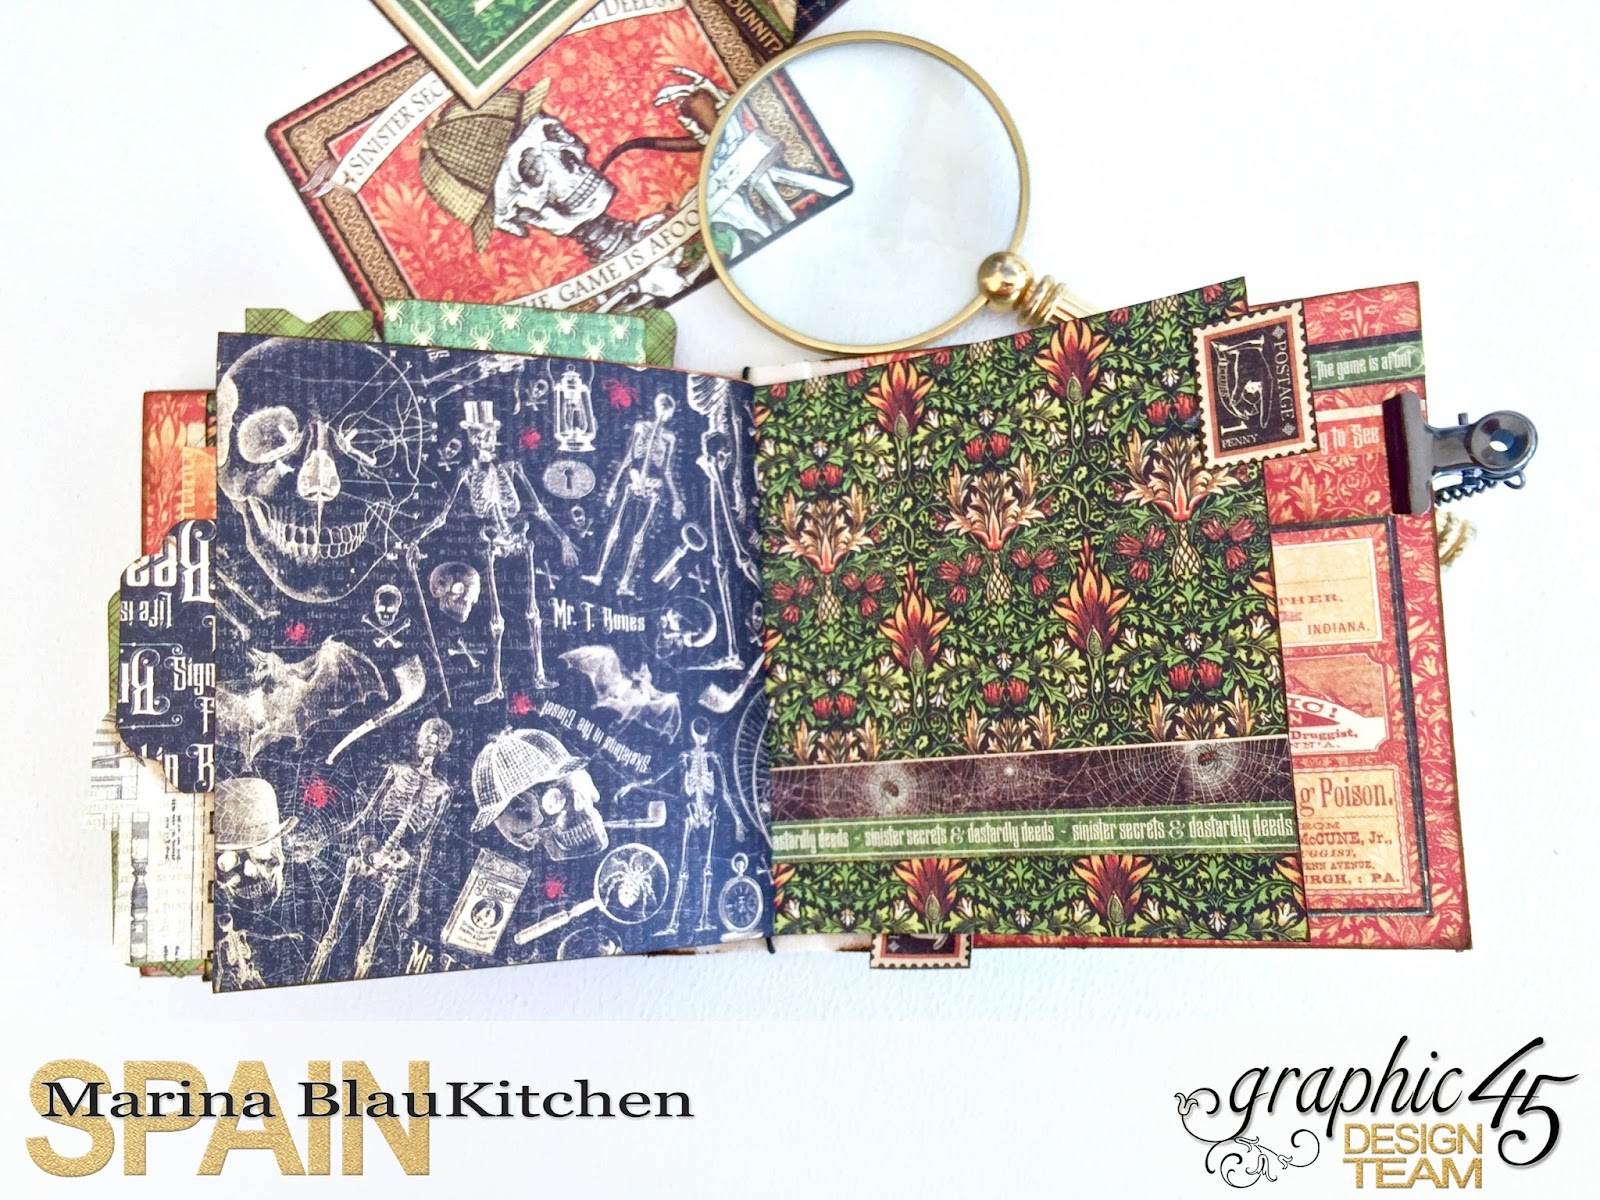 Stand and Mini Album Master Detective by Marina Blaukitchen Product by Graphic 45 photo 24.jpg